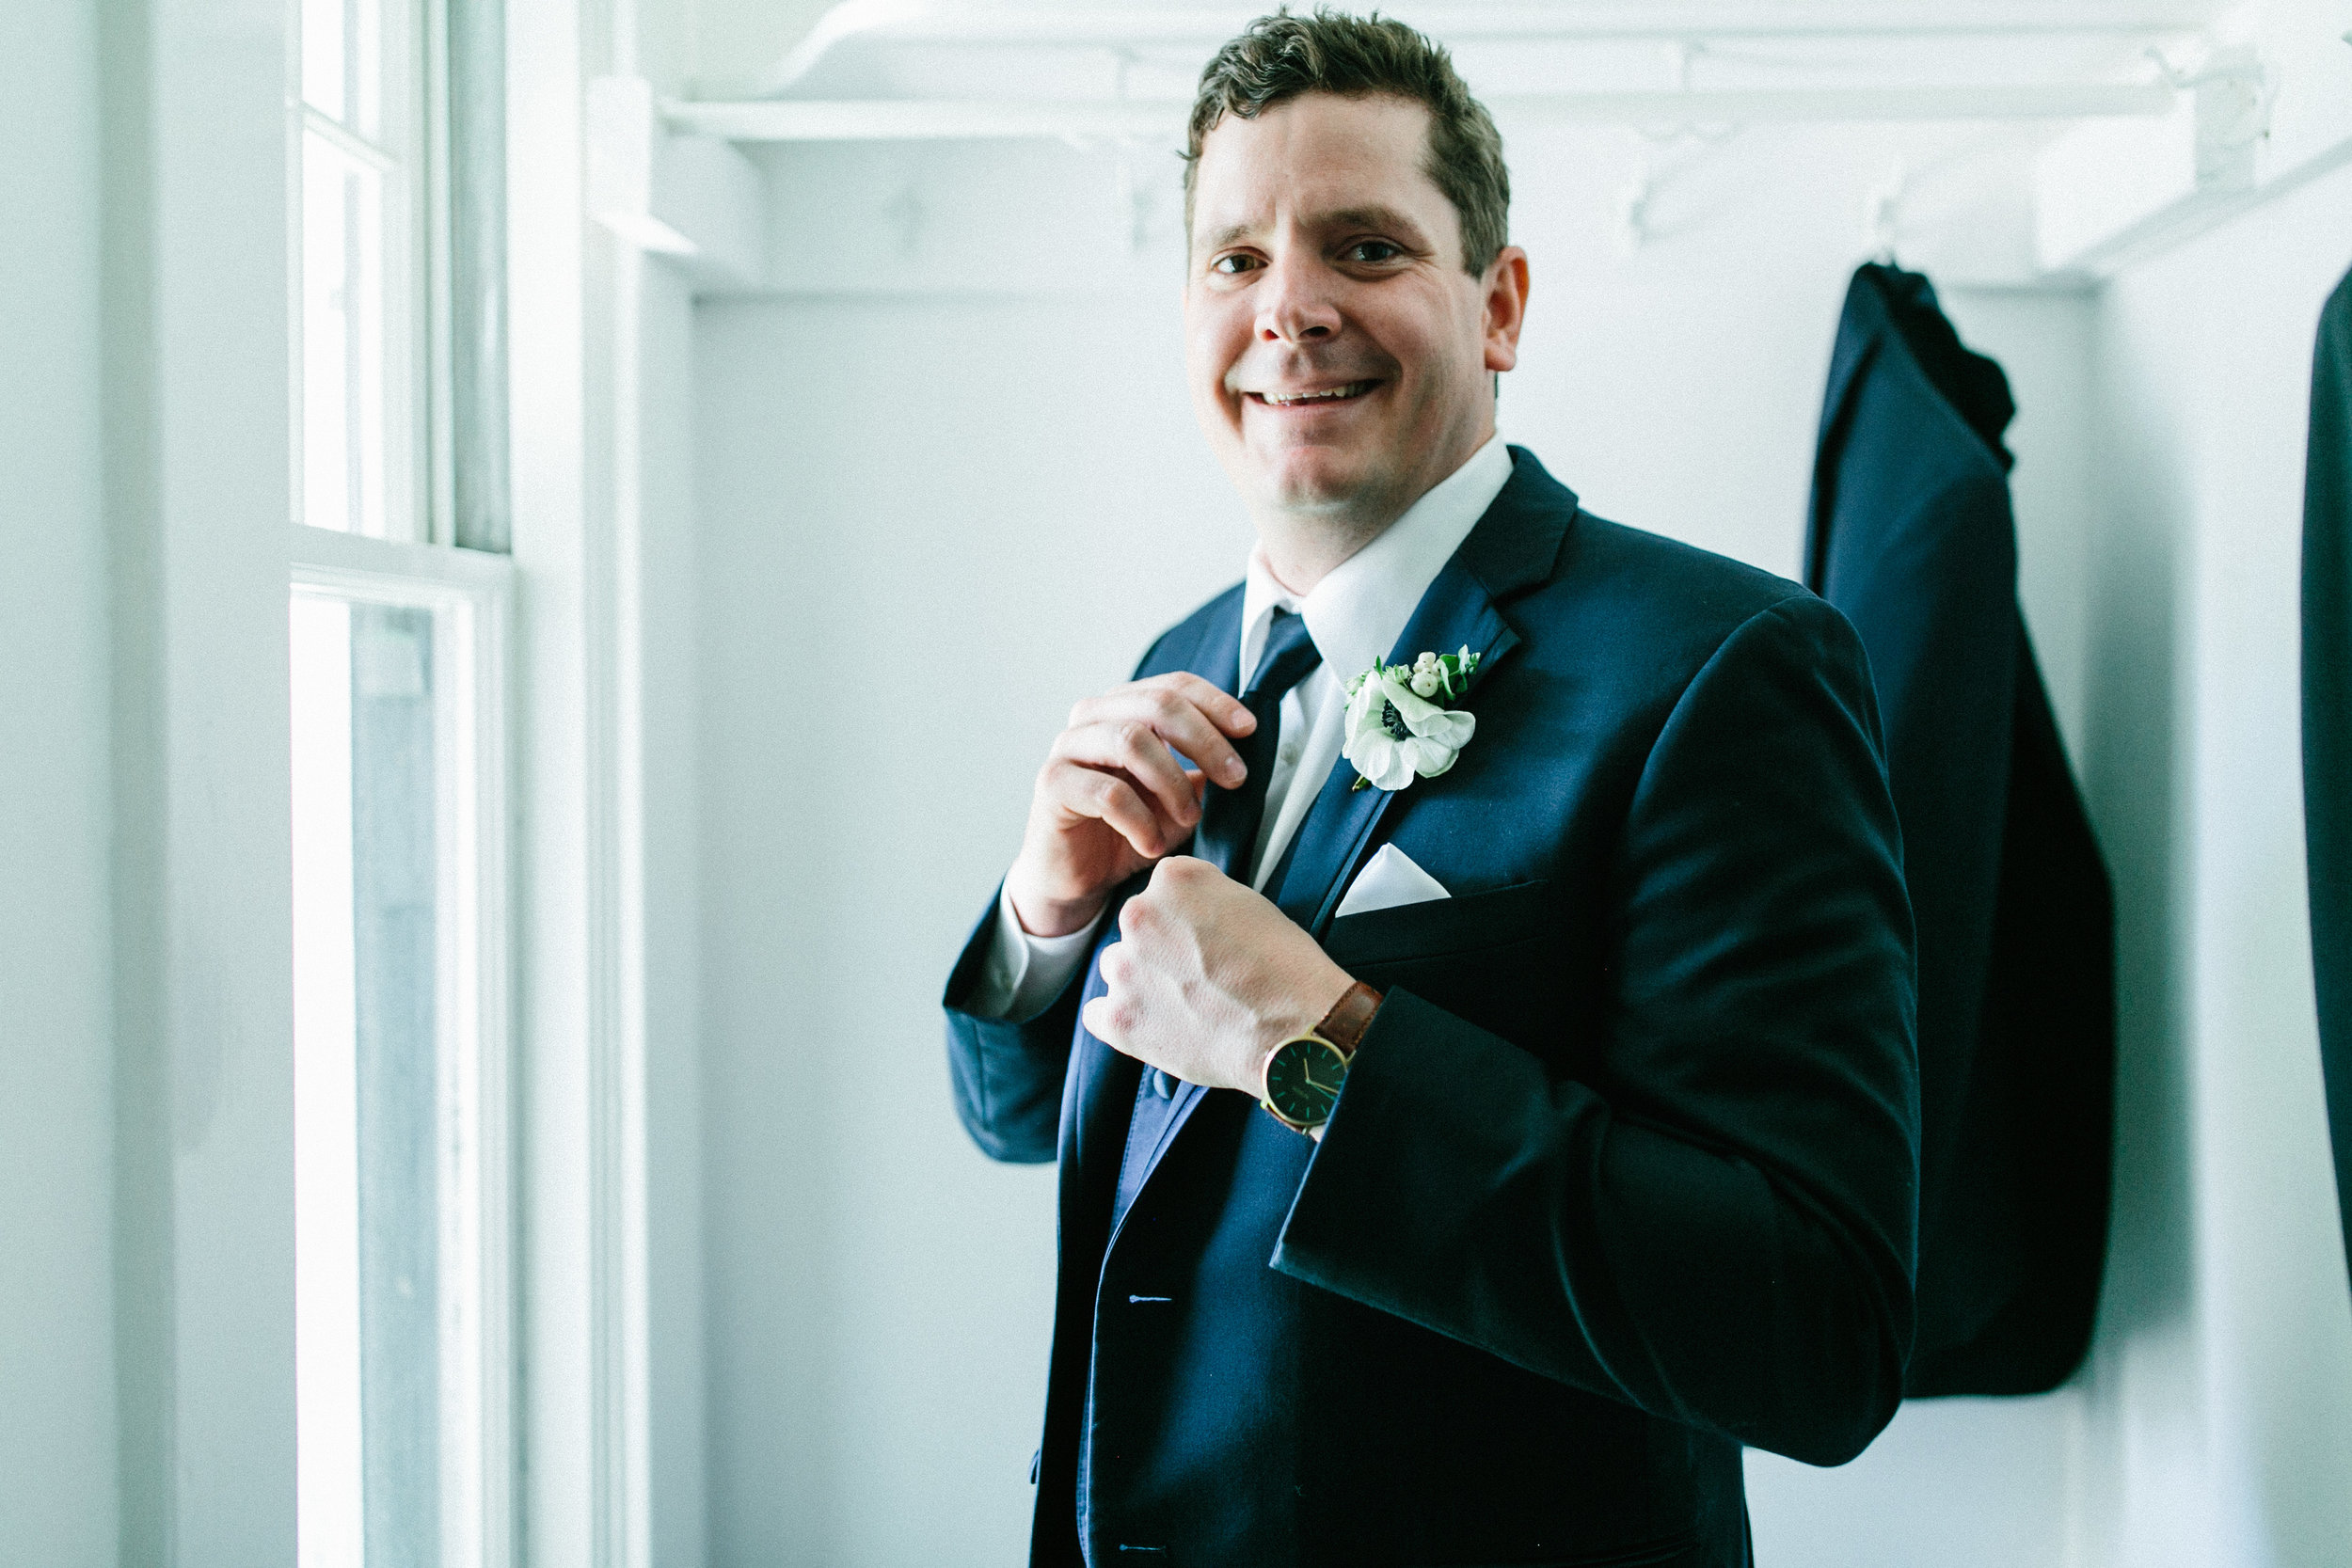 jett-walker-photography-groom-style-01.jpg